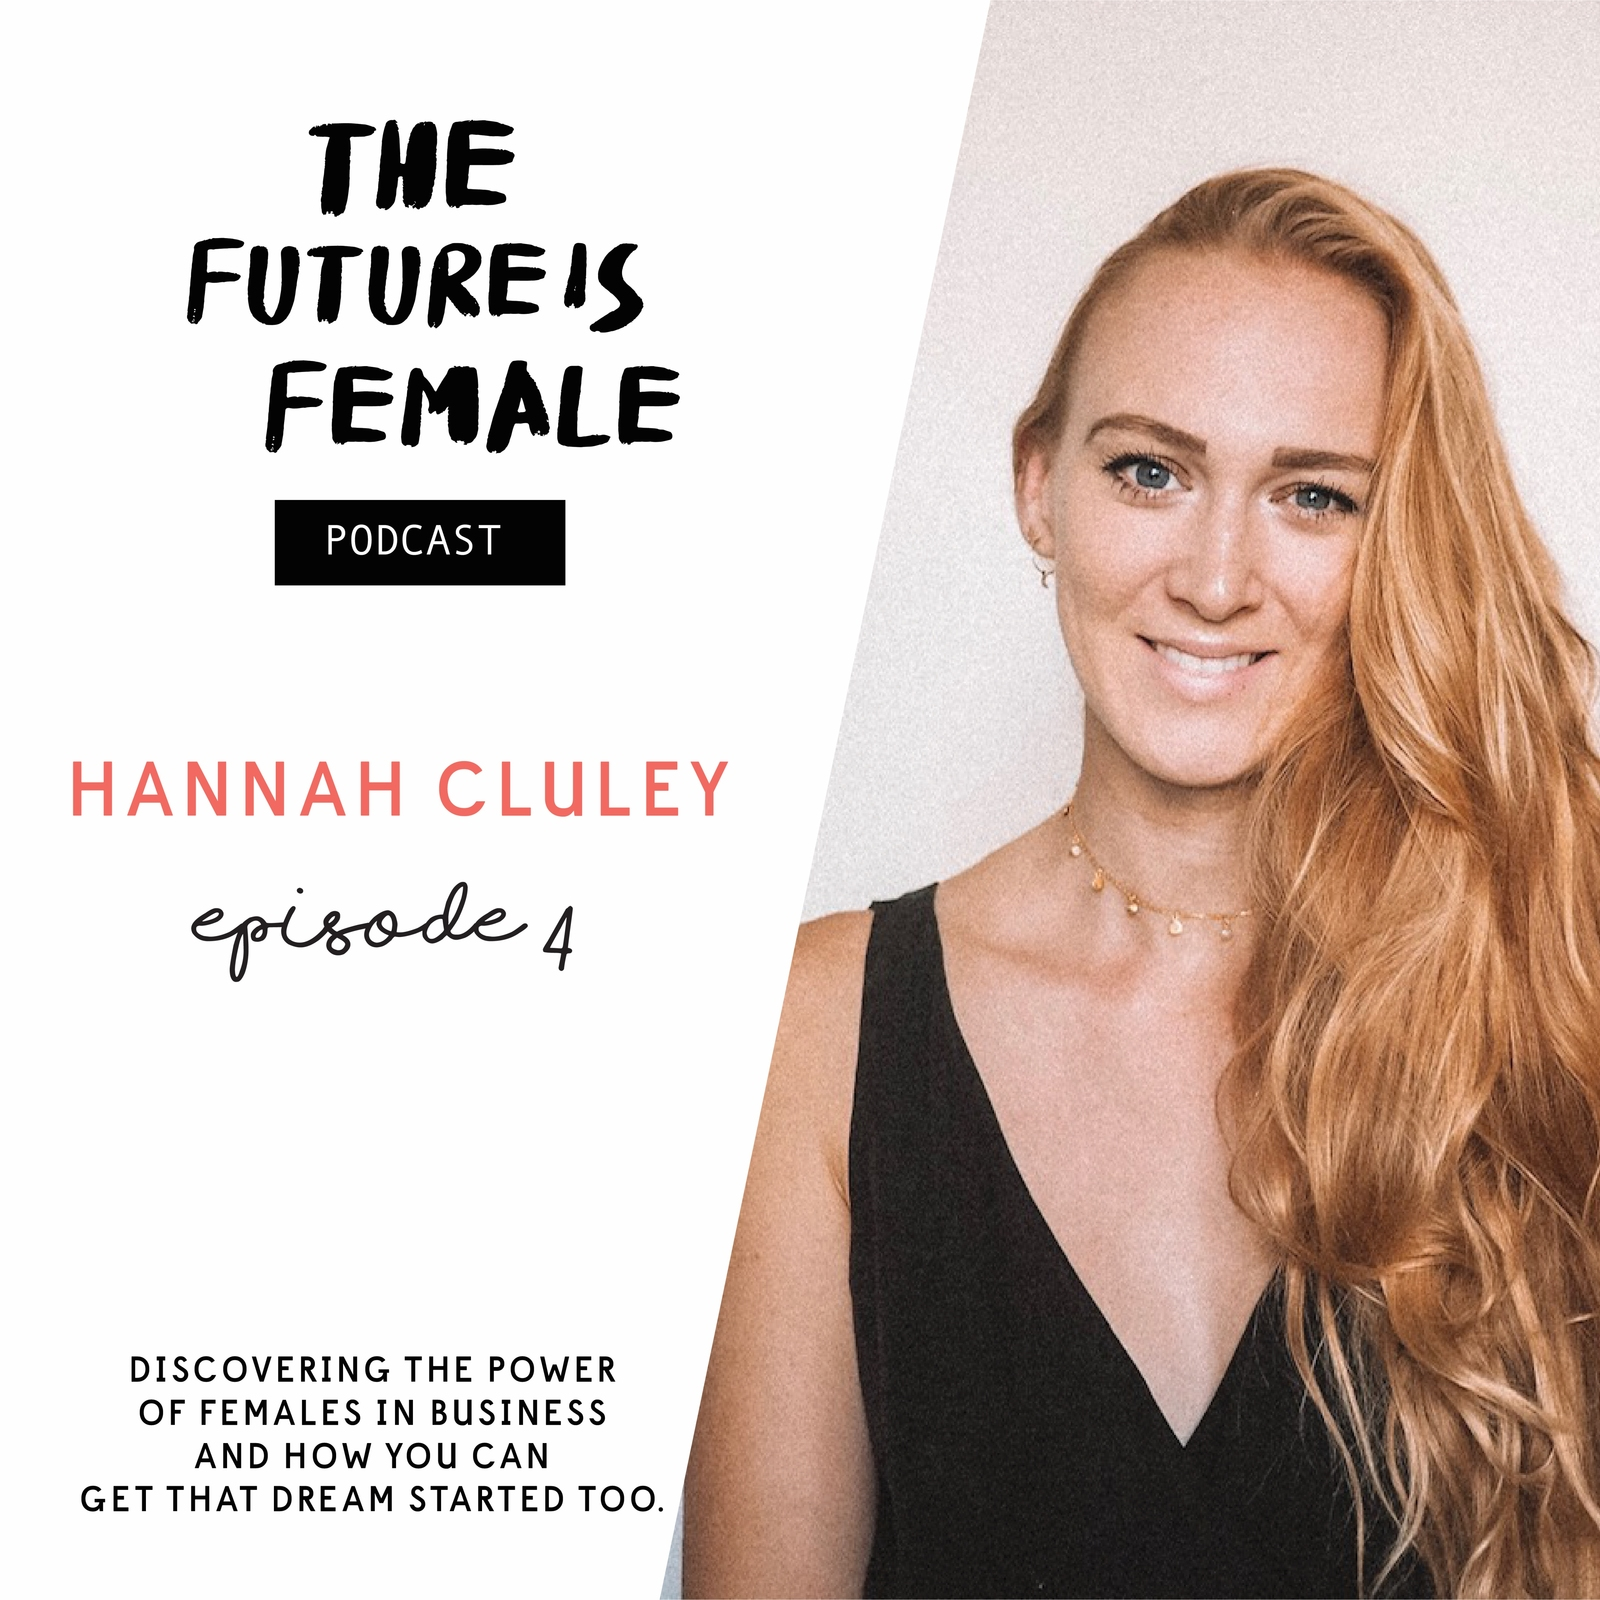 The Future is Female, Hannah Cluley